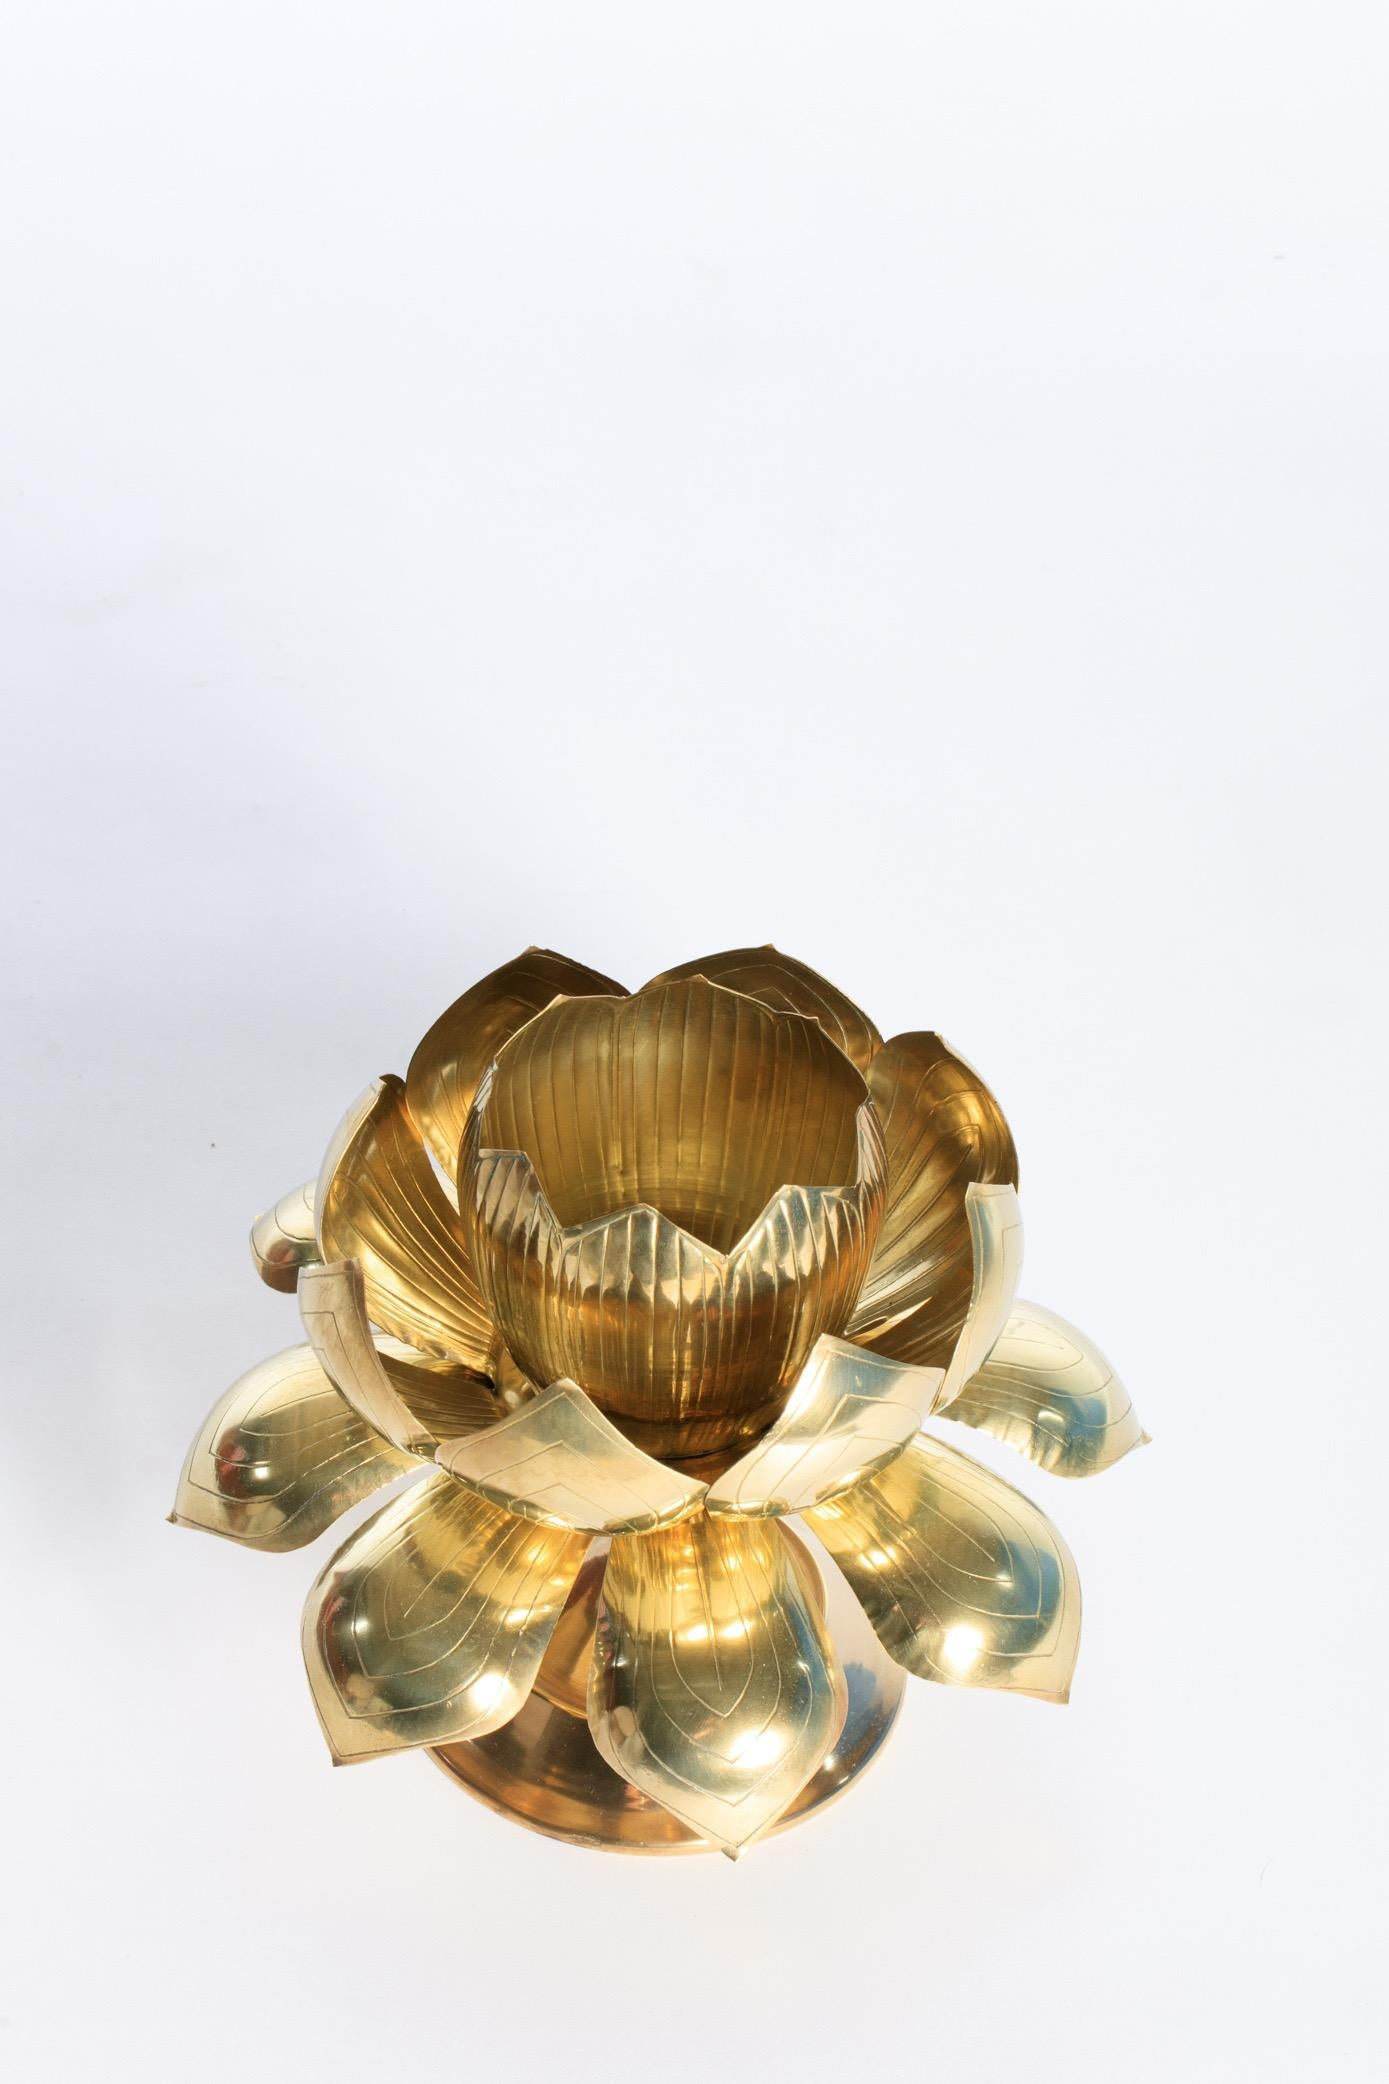 Parzinger Style Large Brass Centerpiece Lotus Candle Holders By Feldman Lighting For Sale At 1stdibs